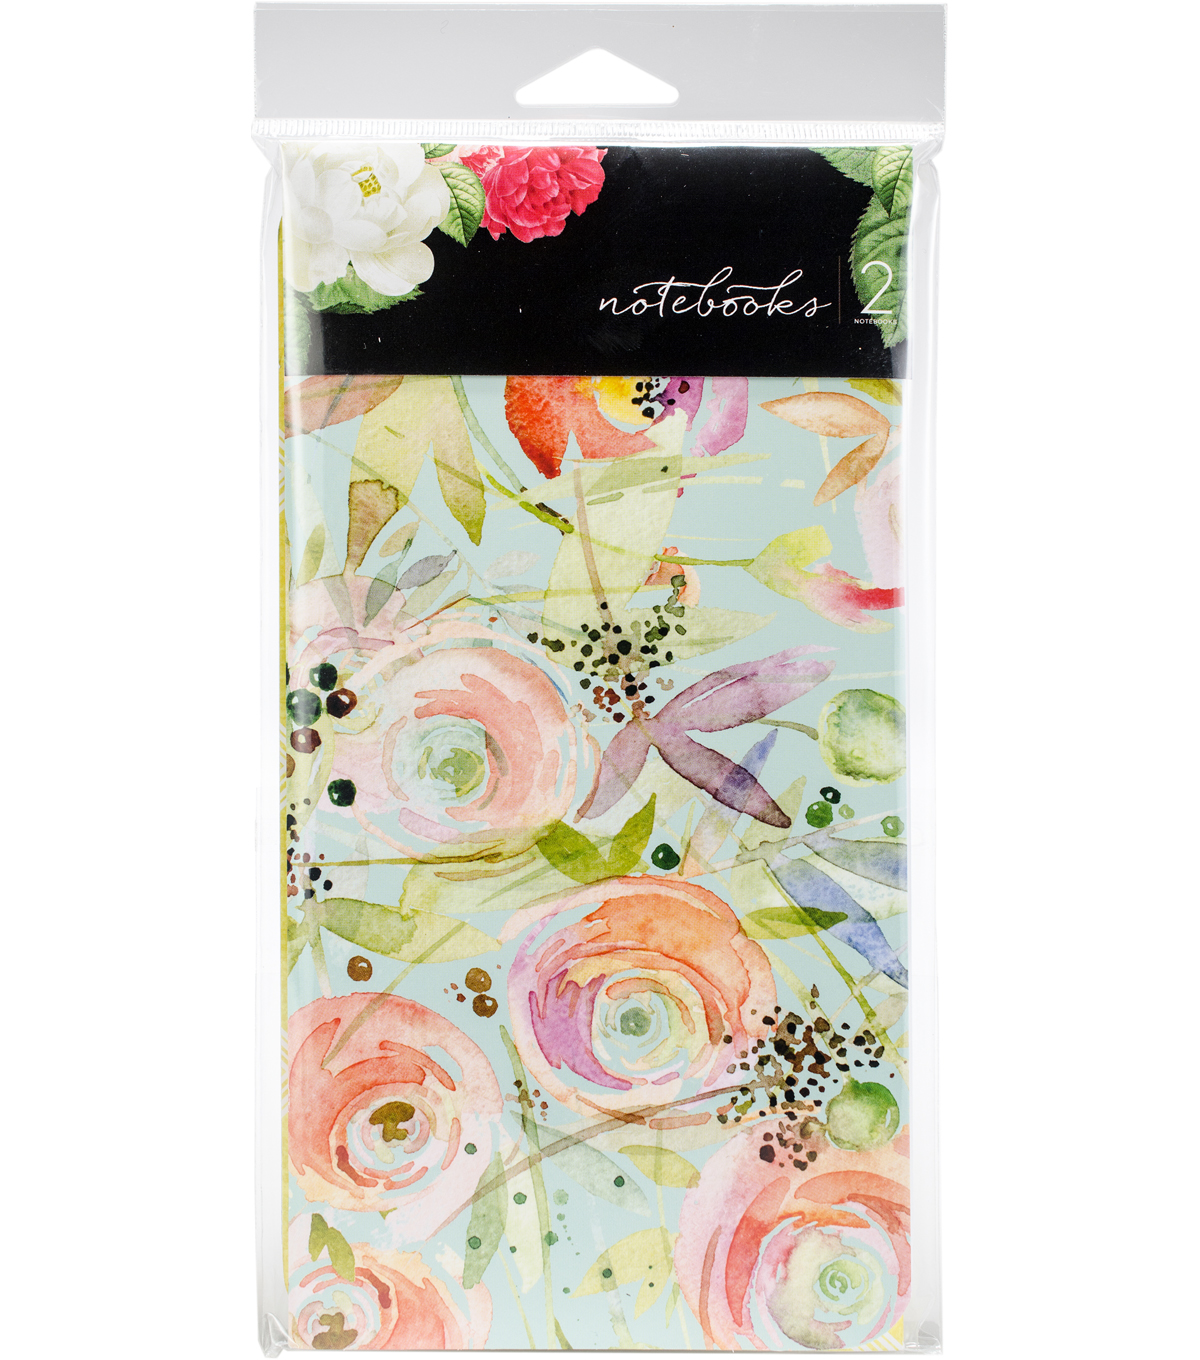 Webster\u0027s Pages The Good Life Traveler Notebooks-Trellis & Flowers